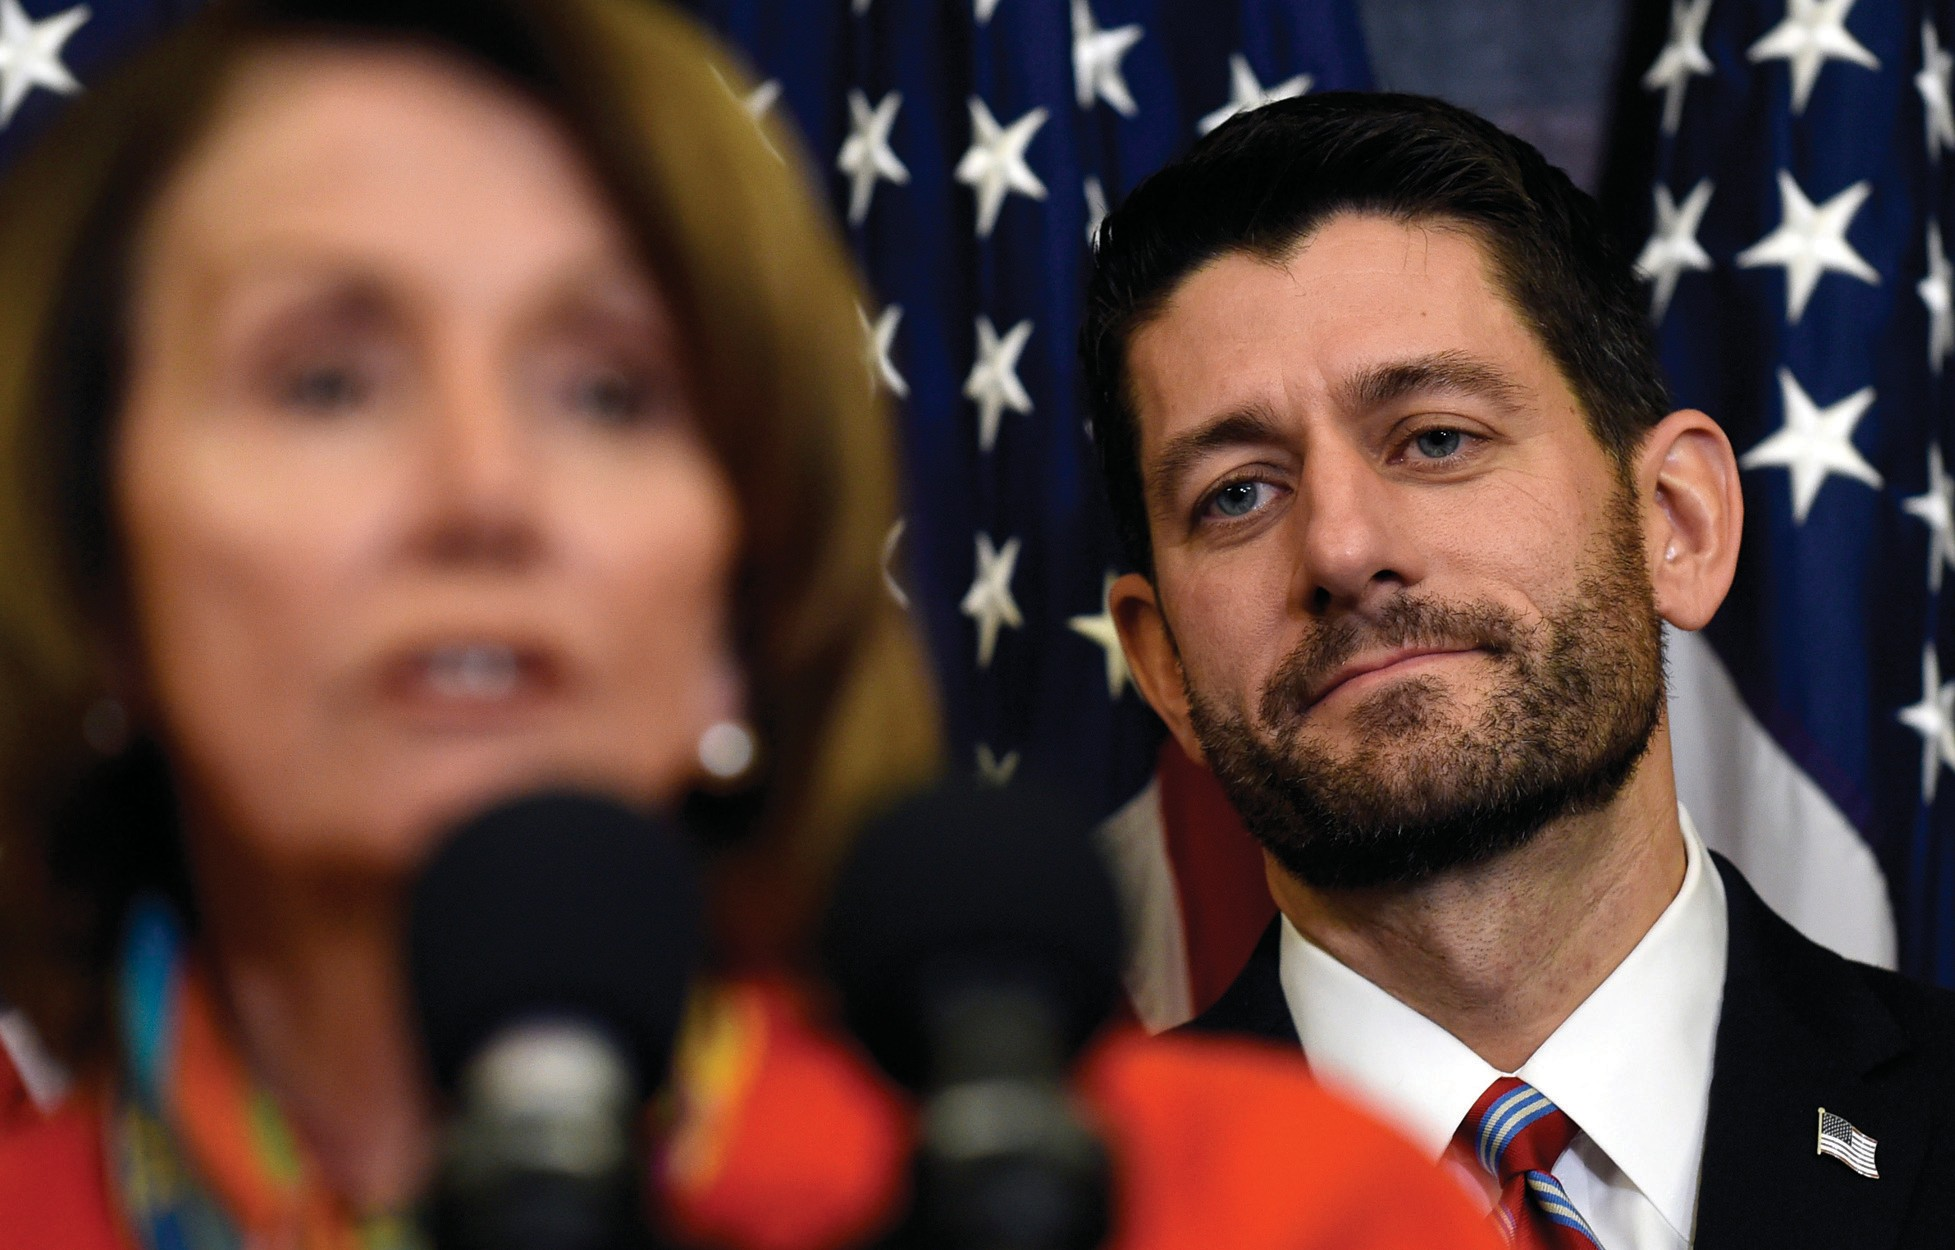 House Speaker Paul Ryan of Wis. listens as House Minority Leader Nancy Pelosi of Calif. speaks on Capitol Hill in Washington, D.C. Wednesday.